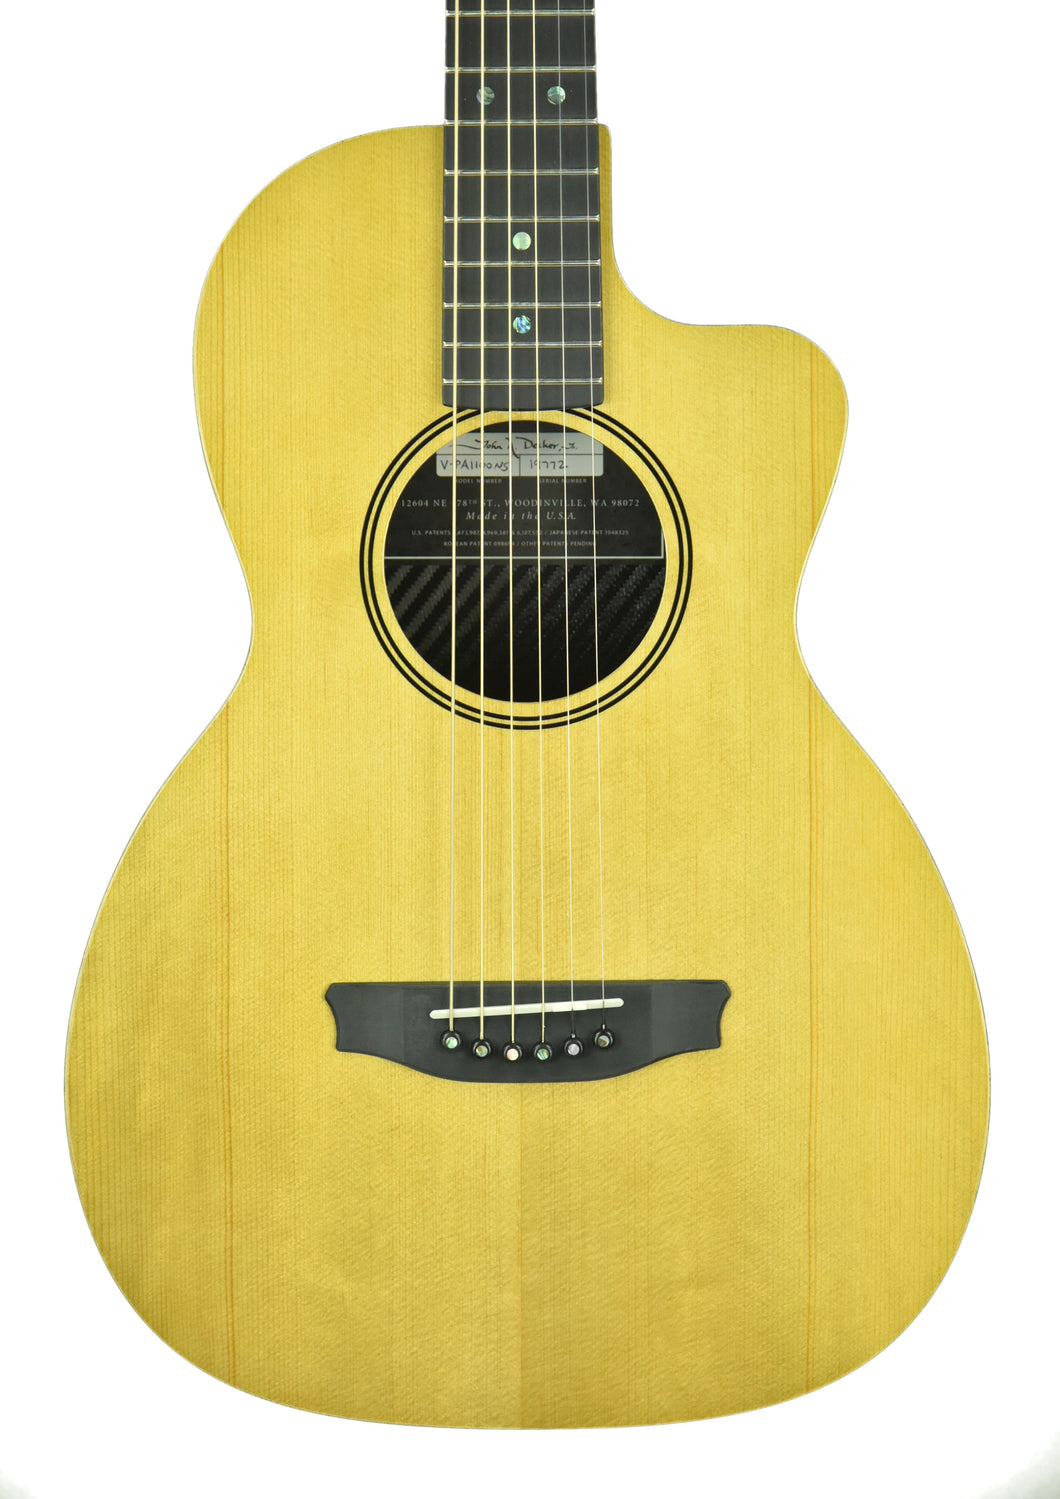 Rainsong V-PA1100NS Acoustic Hybrid Guitar in Natural 19772 - The Music Gallery